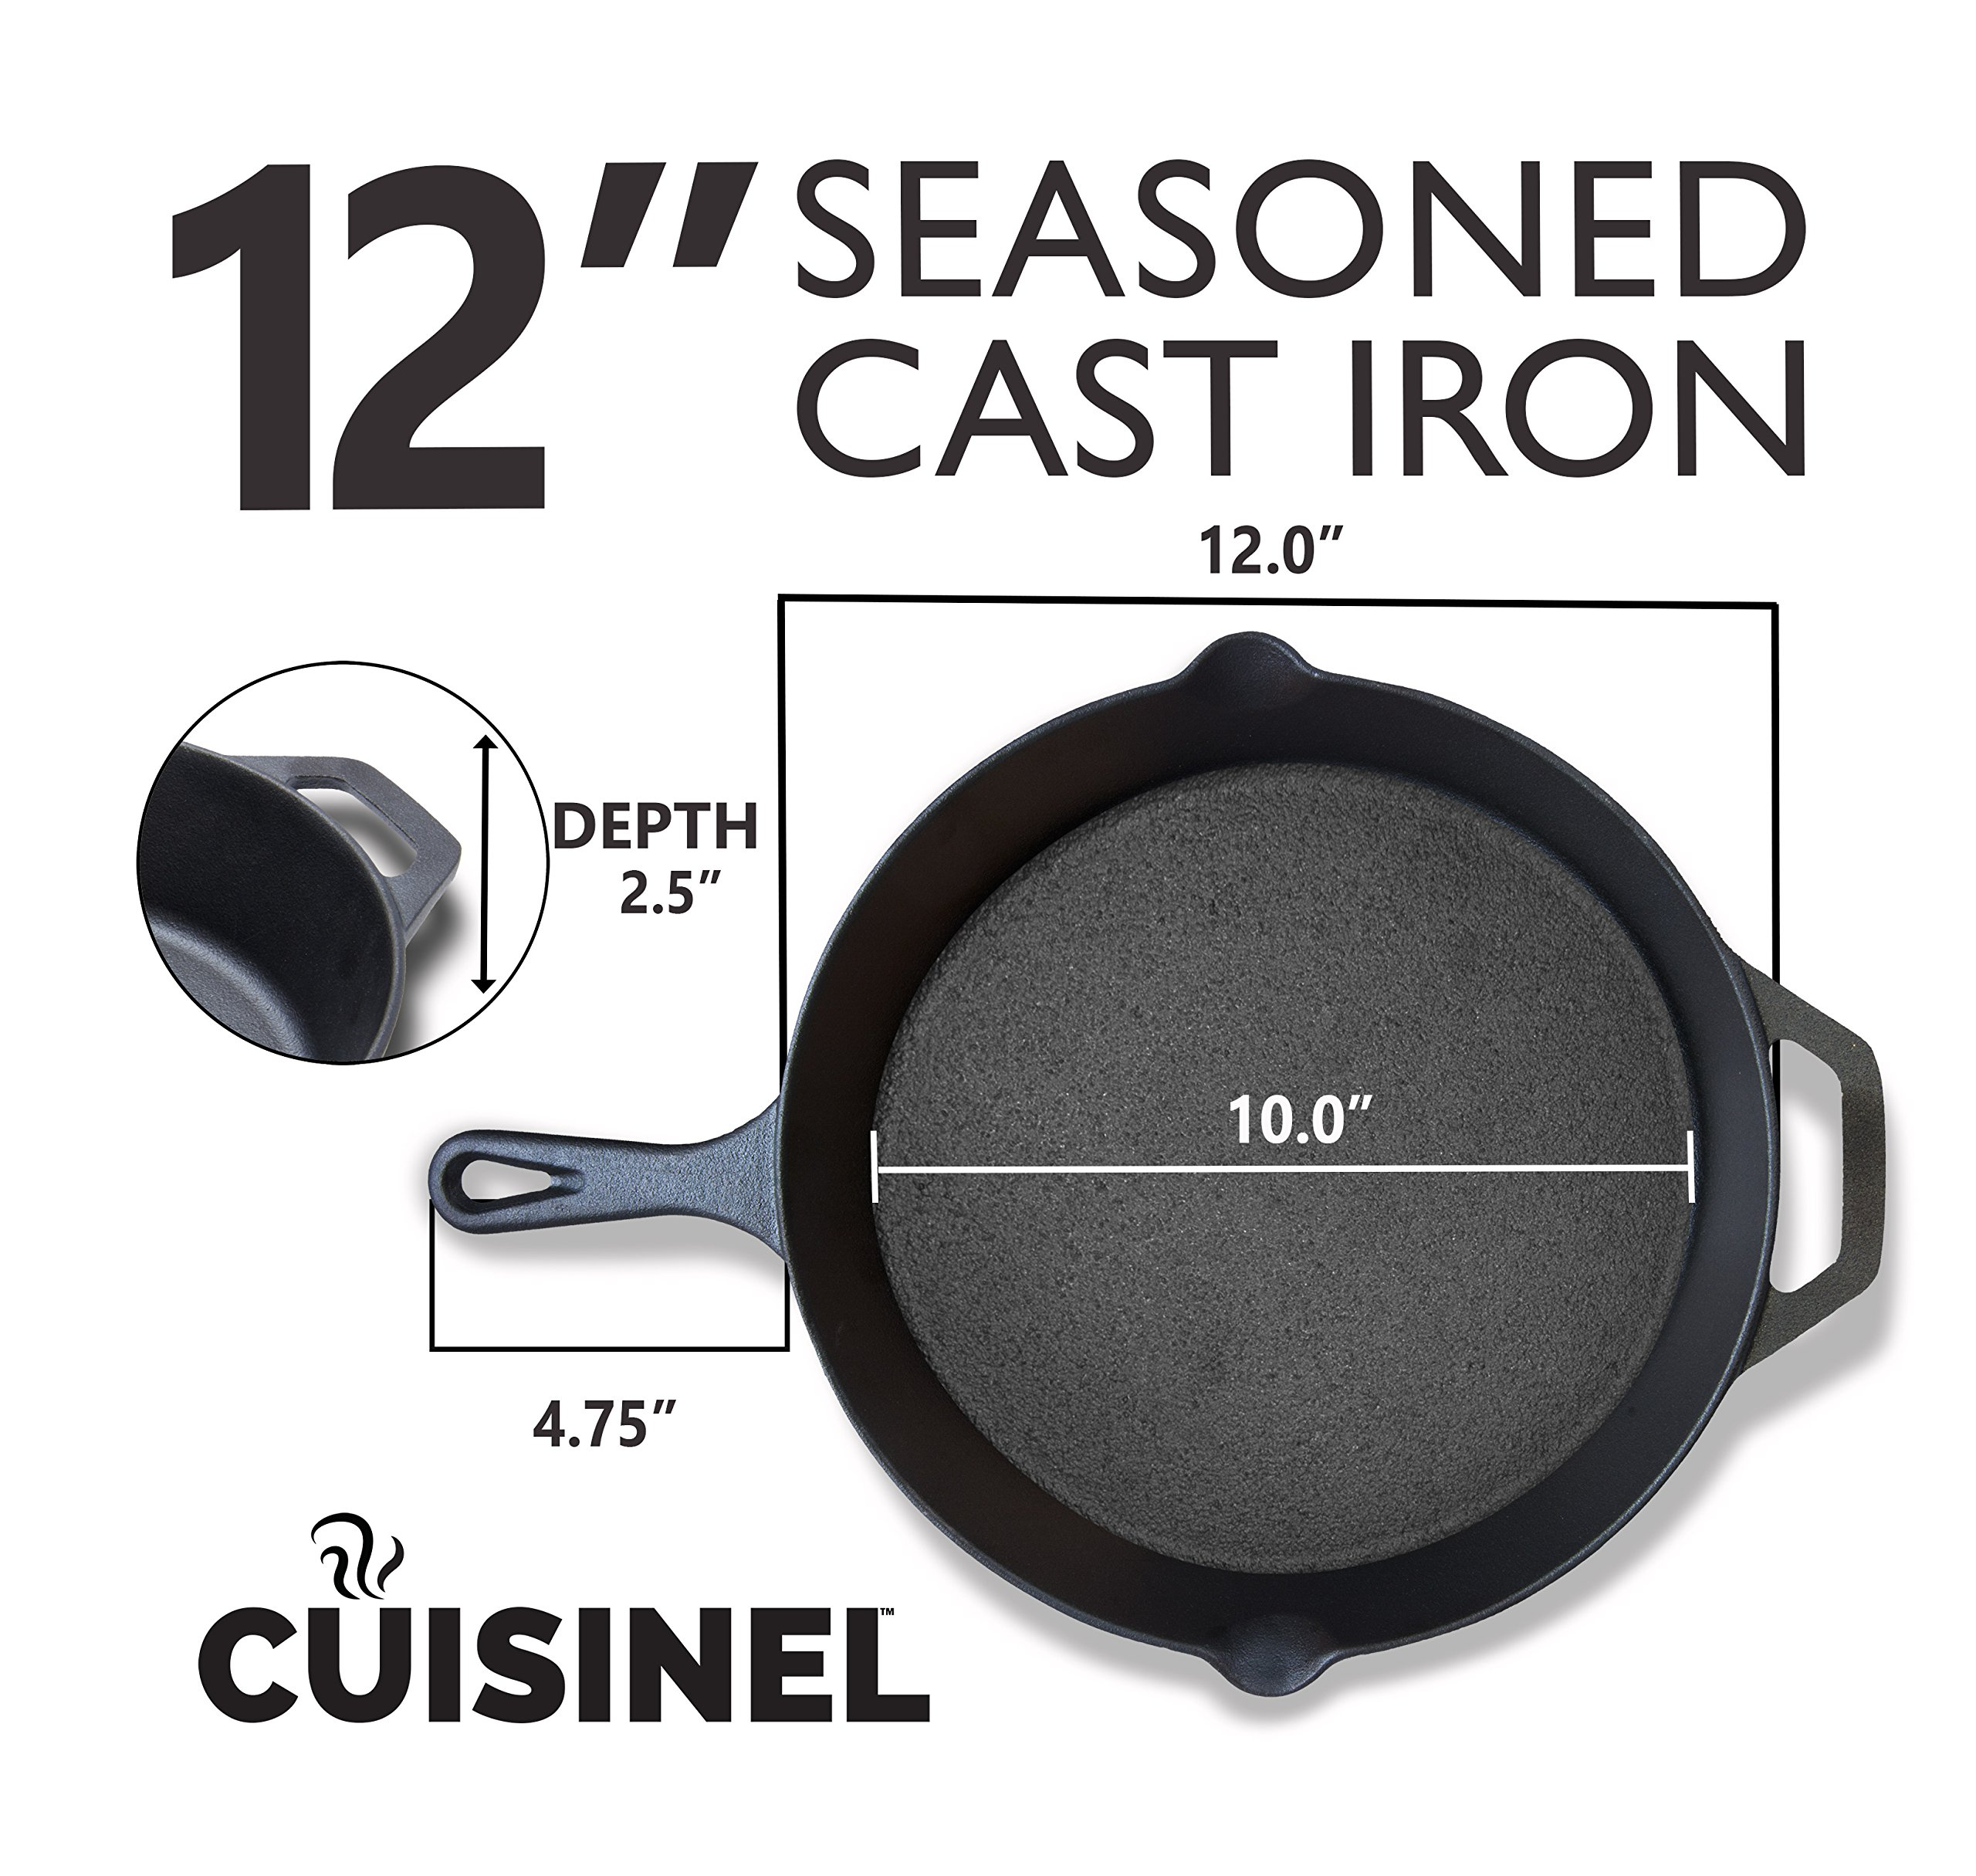 Pre-Seasoned Cast Iron Skillet 2-Piece Set (10-Inch and 12-Inch) Oven Safe Cookware | 2 Heat-Resistant Holders | Indoor and Outdoor Use | Grill, Stovetop, Induction Safe by cuisinel (Image #5)